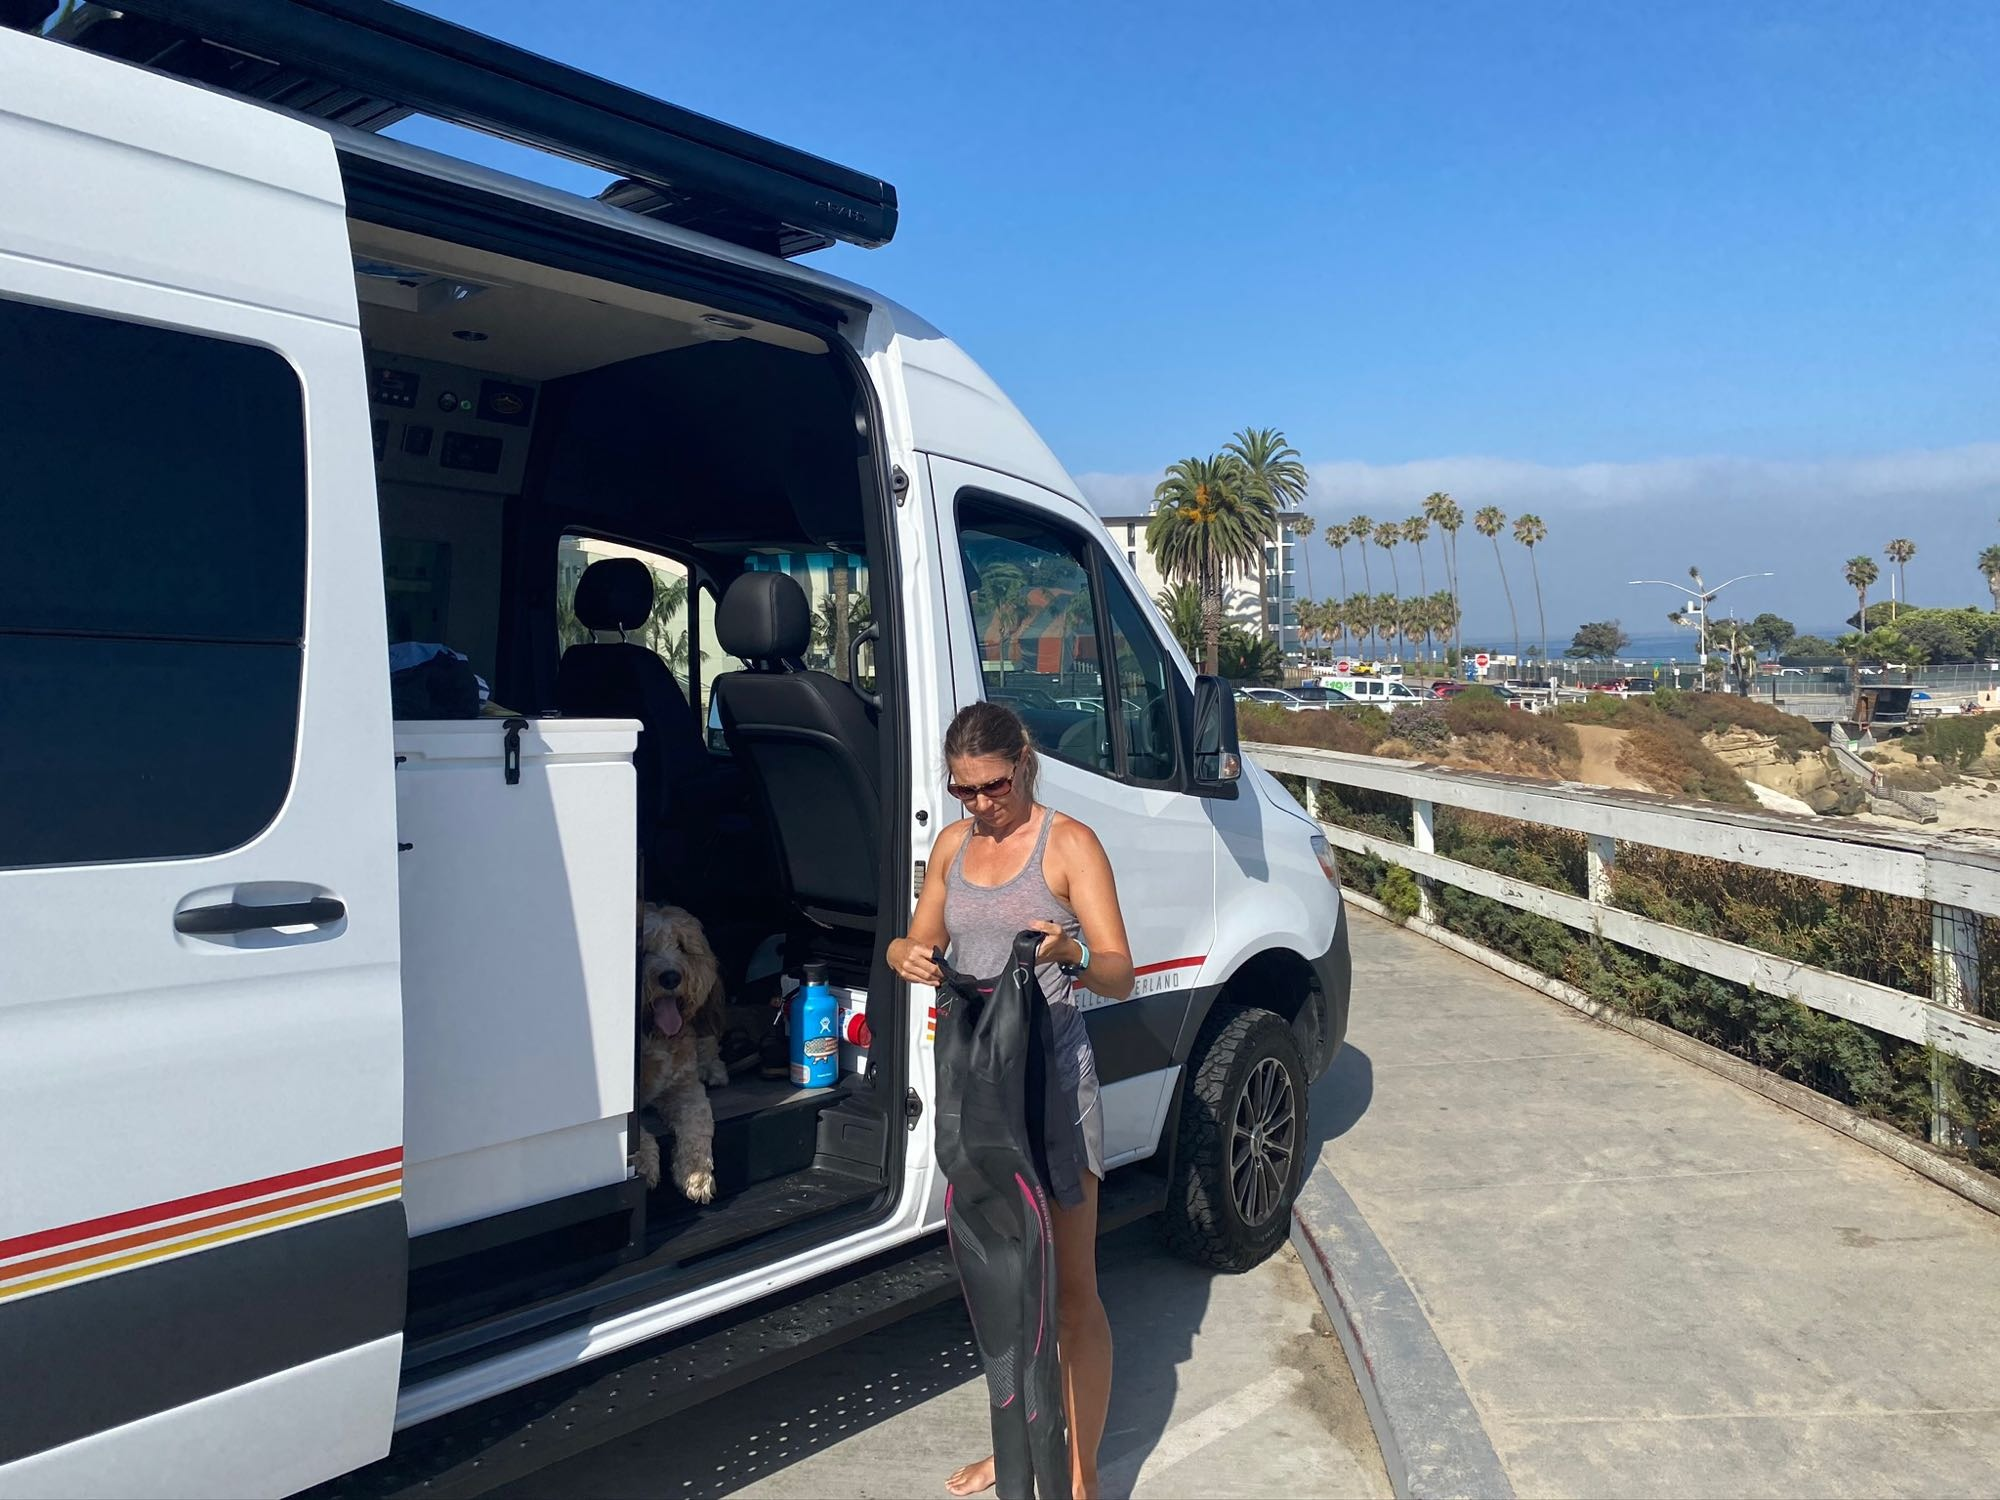 Getting ready for a swim at La Jolla Cove. Storyteller Overland Mode 4 X 4 2020